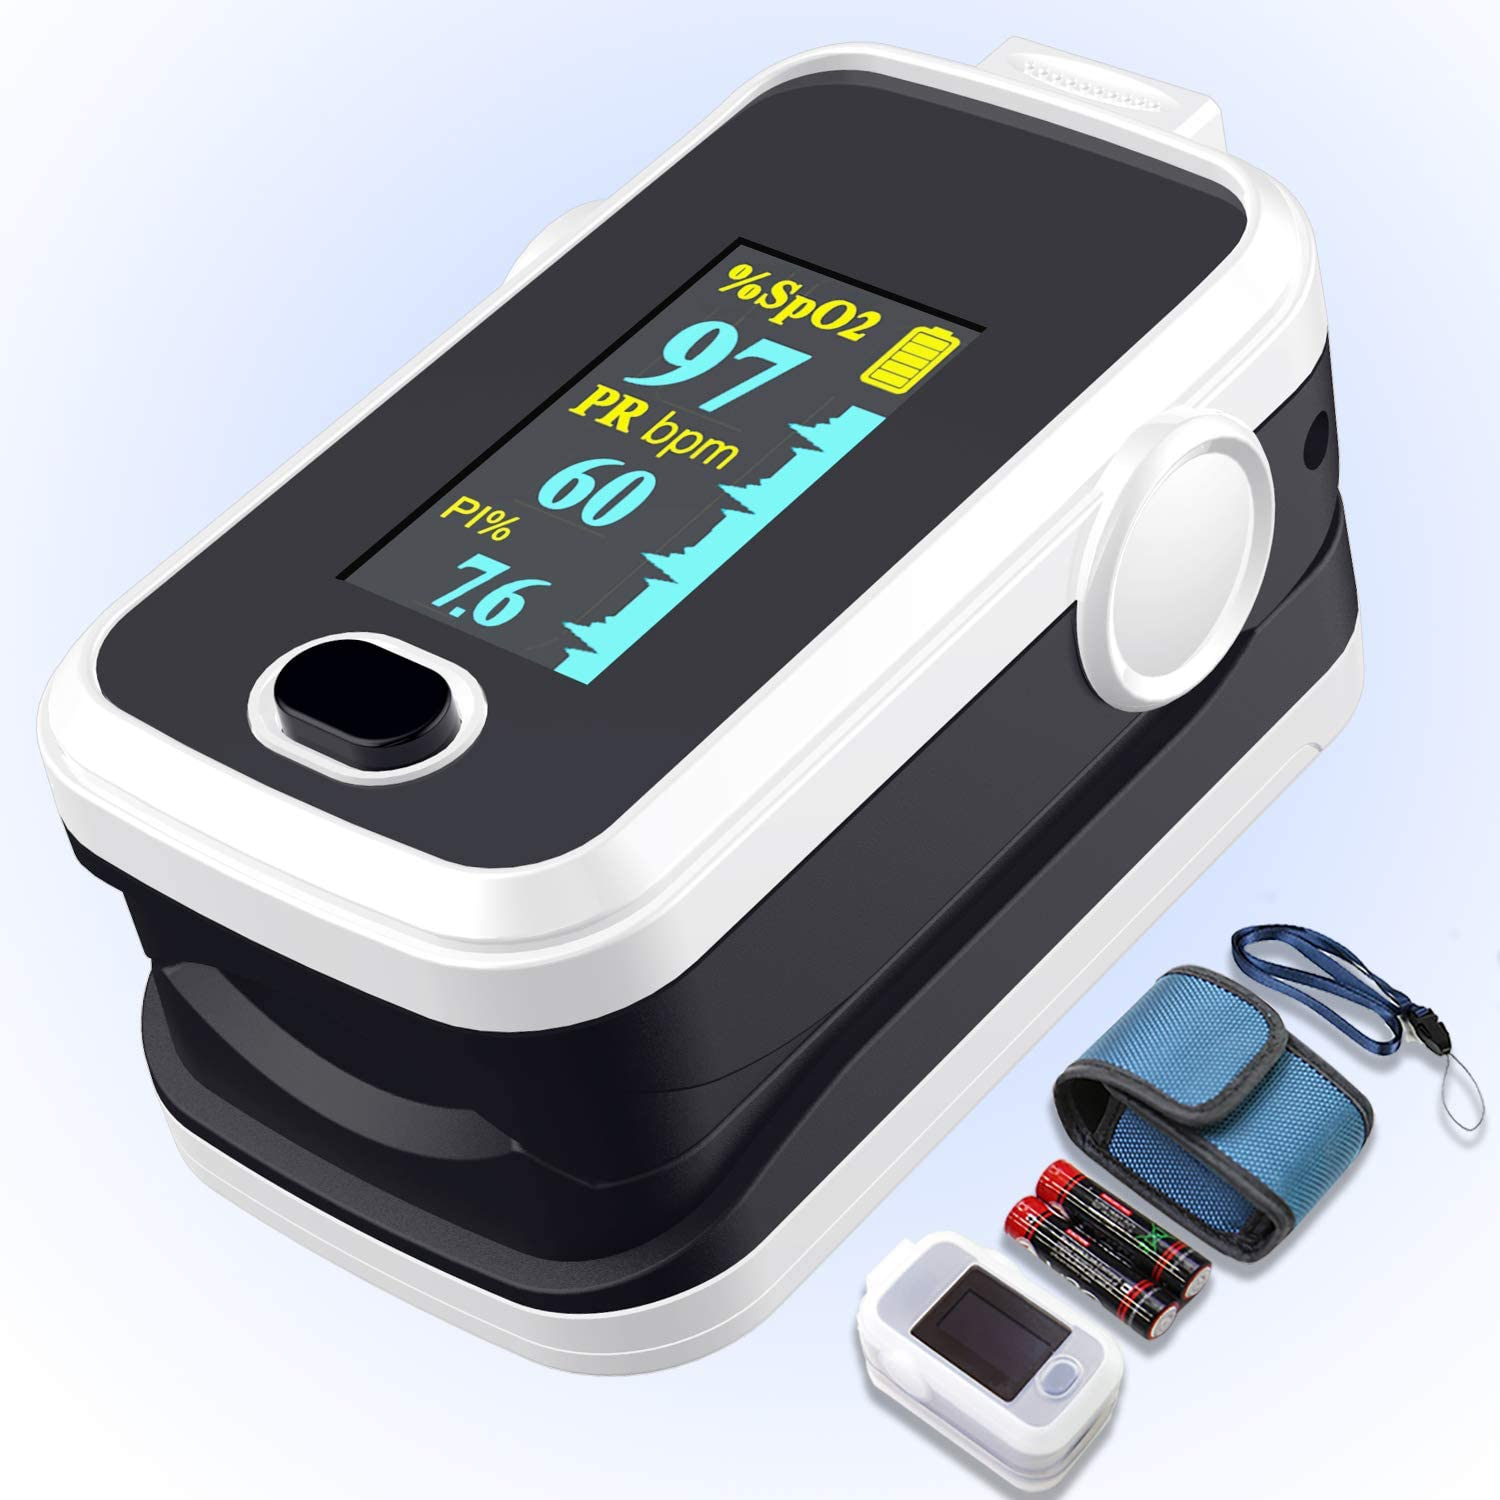 Pulse oximeter fingertip with Plethysmograph and Perfusion Index, Portable Blood Oxygen Saturation Monitor for Heart Rate and SpO2 Level, O2 Monitor Finger for Oxygen,Pulse Ox,Oximetro, (Black-White)